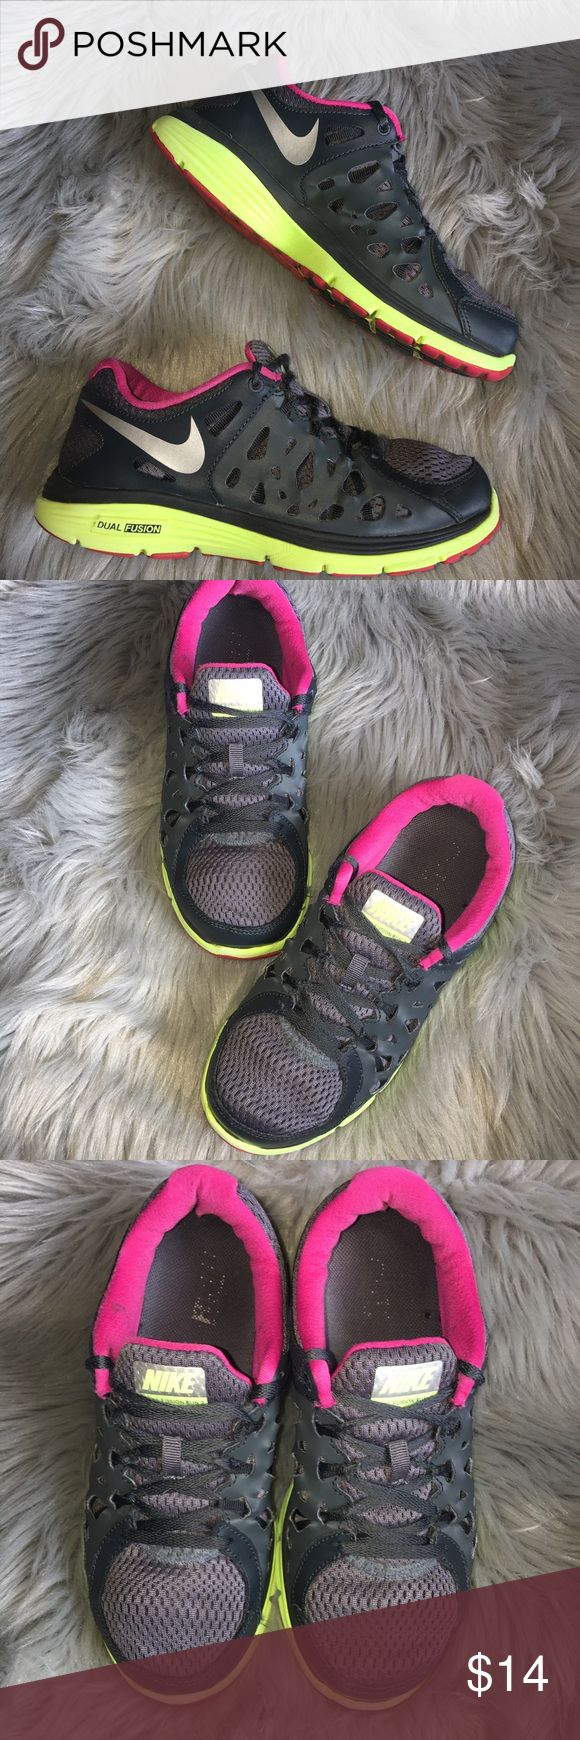 ✔️Nike Dual Fusion Shoes✔️ In great condition but with just the shoes laces being a little bit worn Nike Dual Fusion shoes. Nike Shoes Sneakers